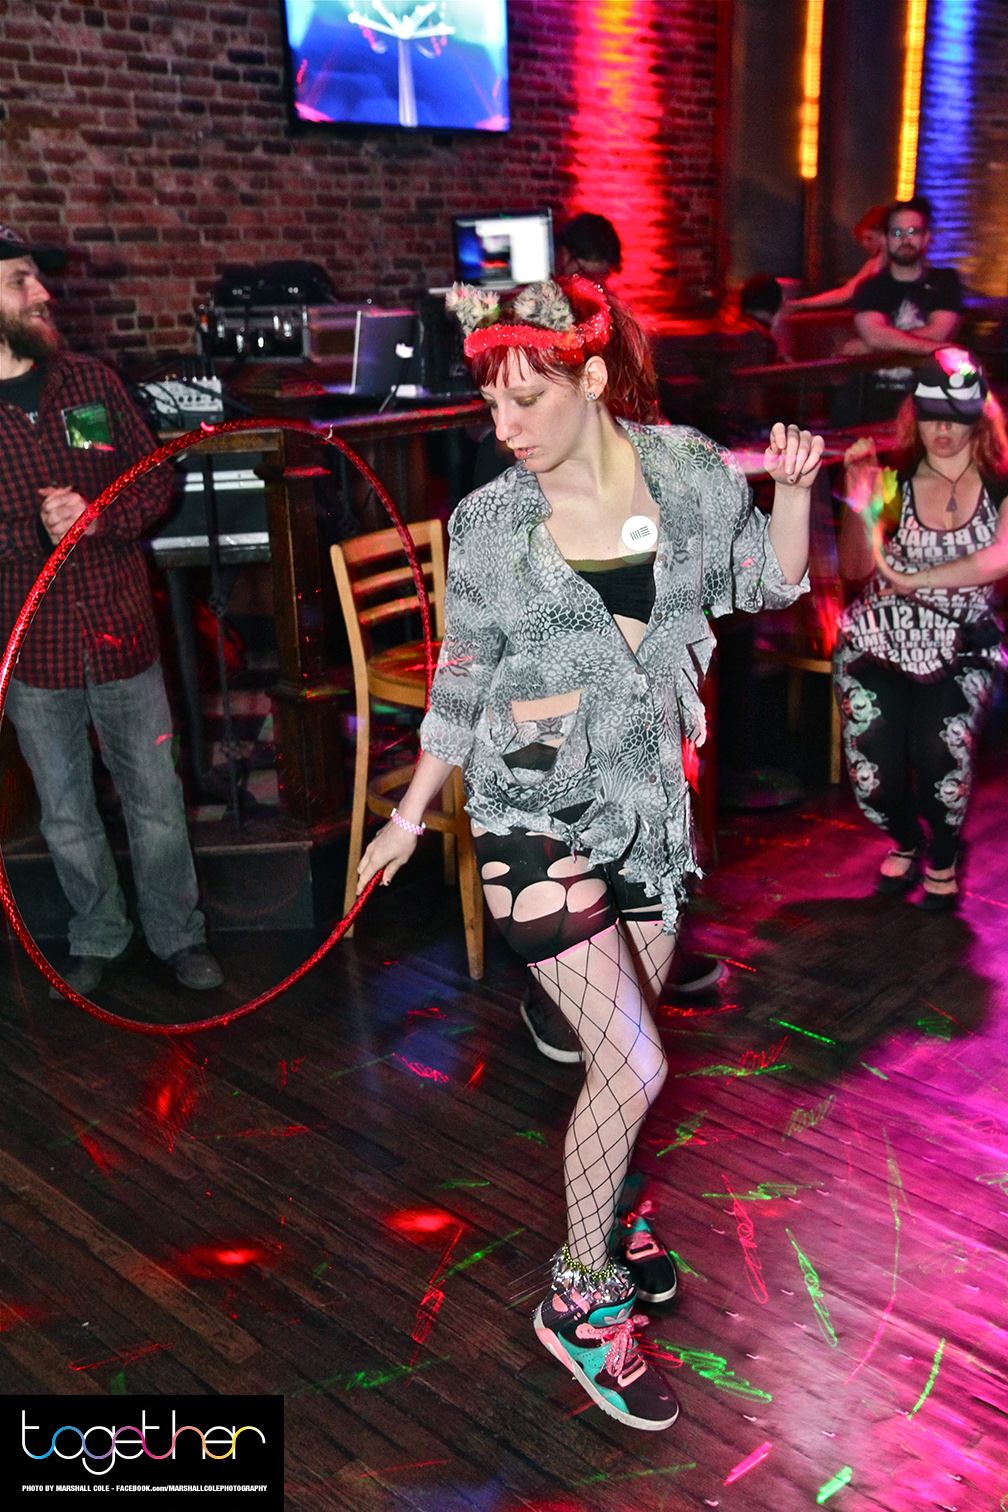 Wobble Wednesday at Wonderbar on May 15th, 2013